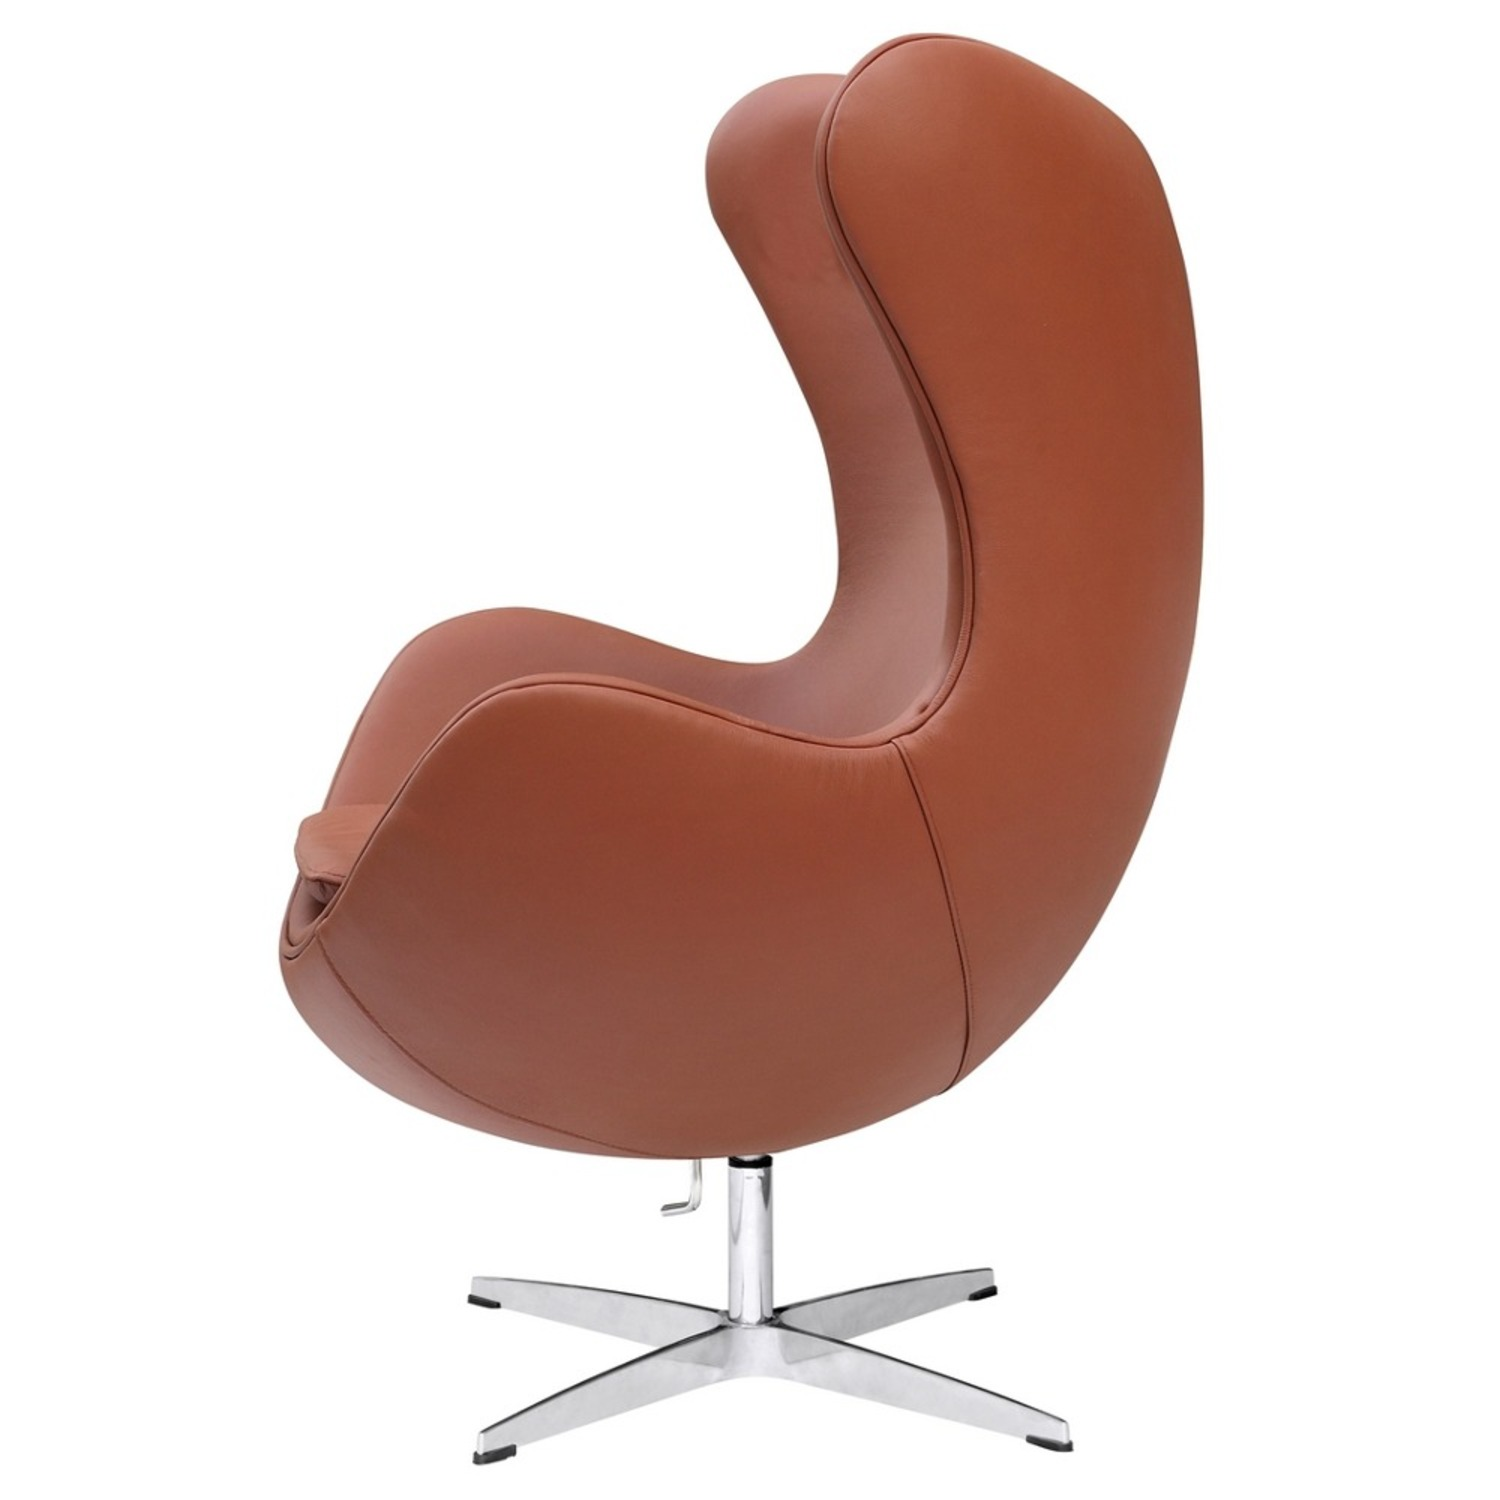 Inner Chair In Light Brown Leather - image-3